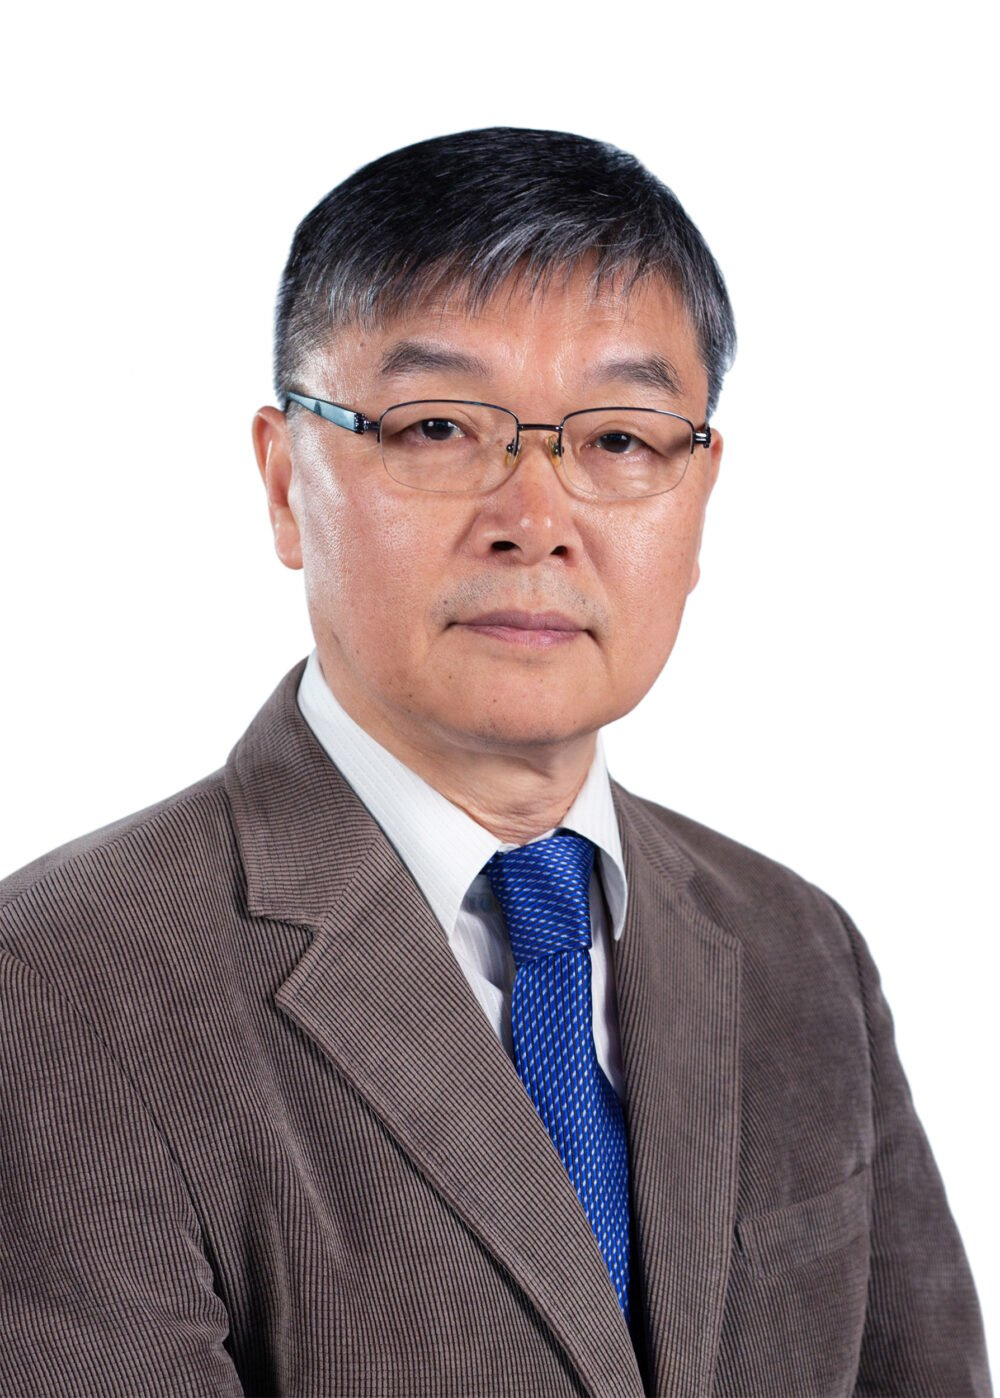 Dr. Lee Choon Heung